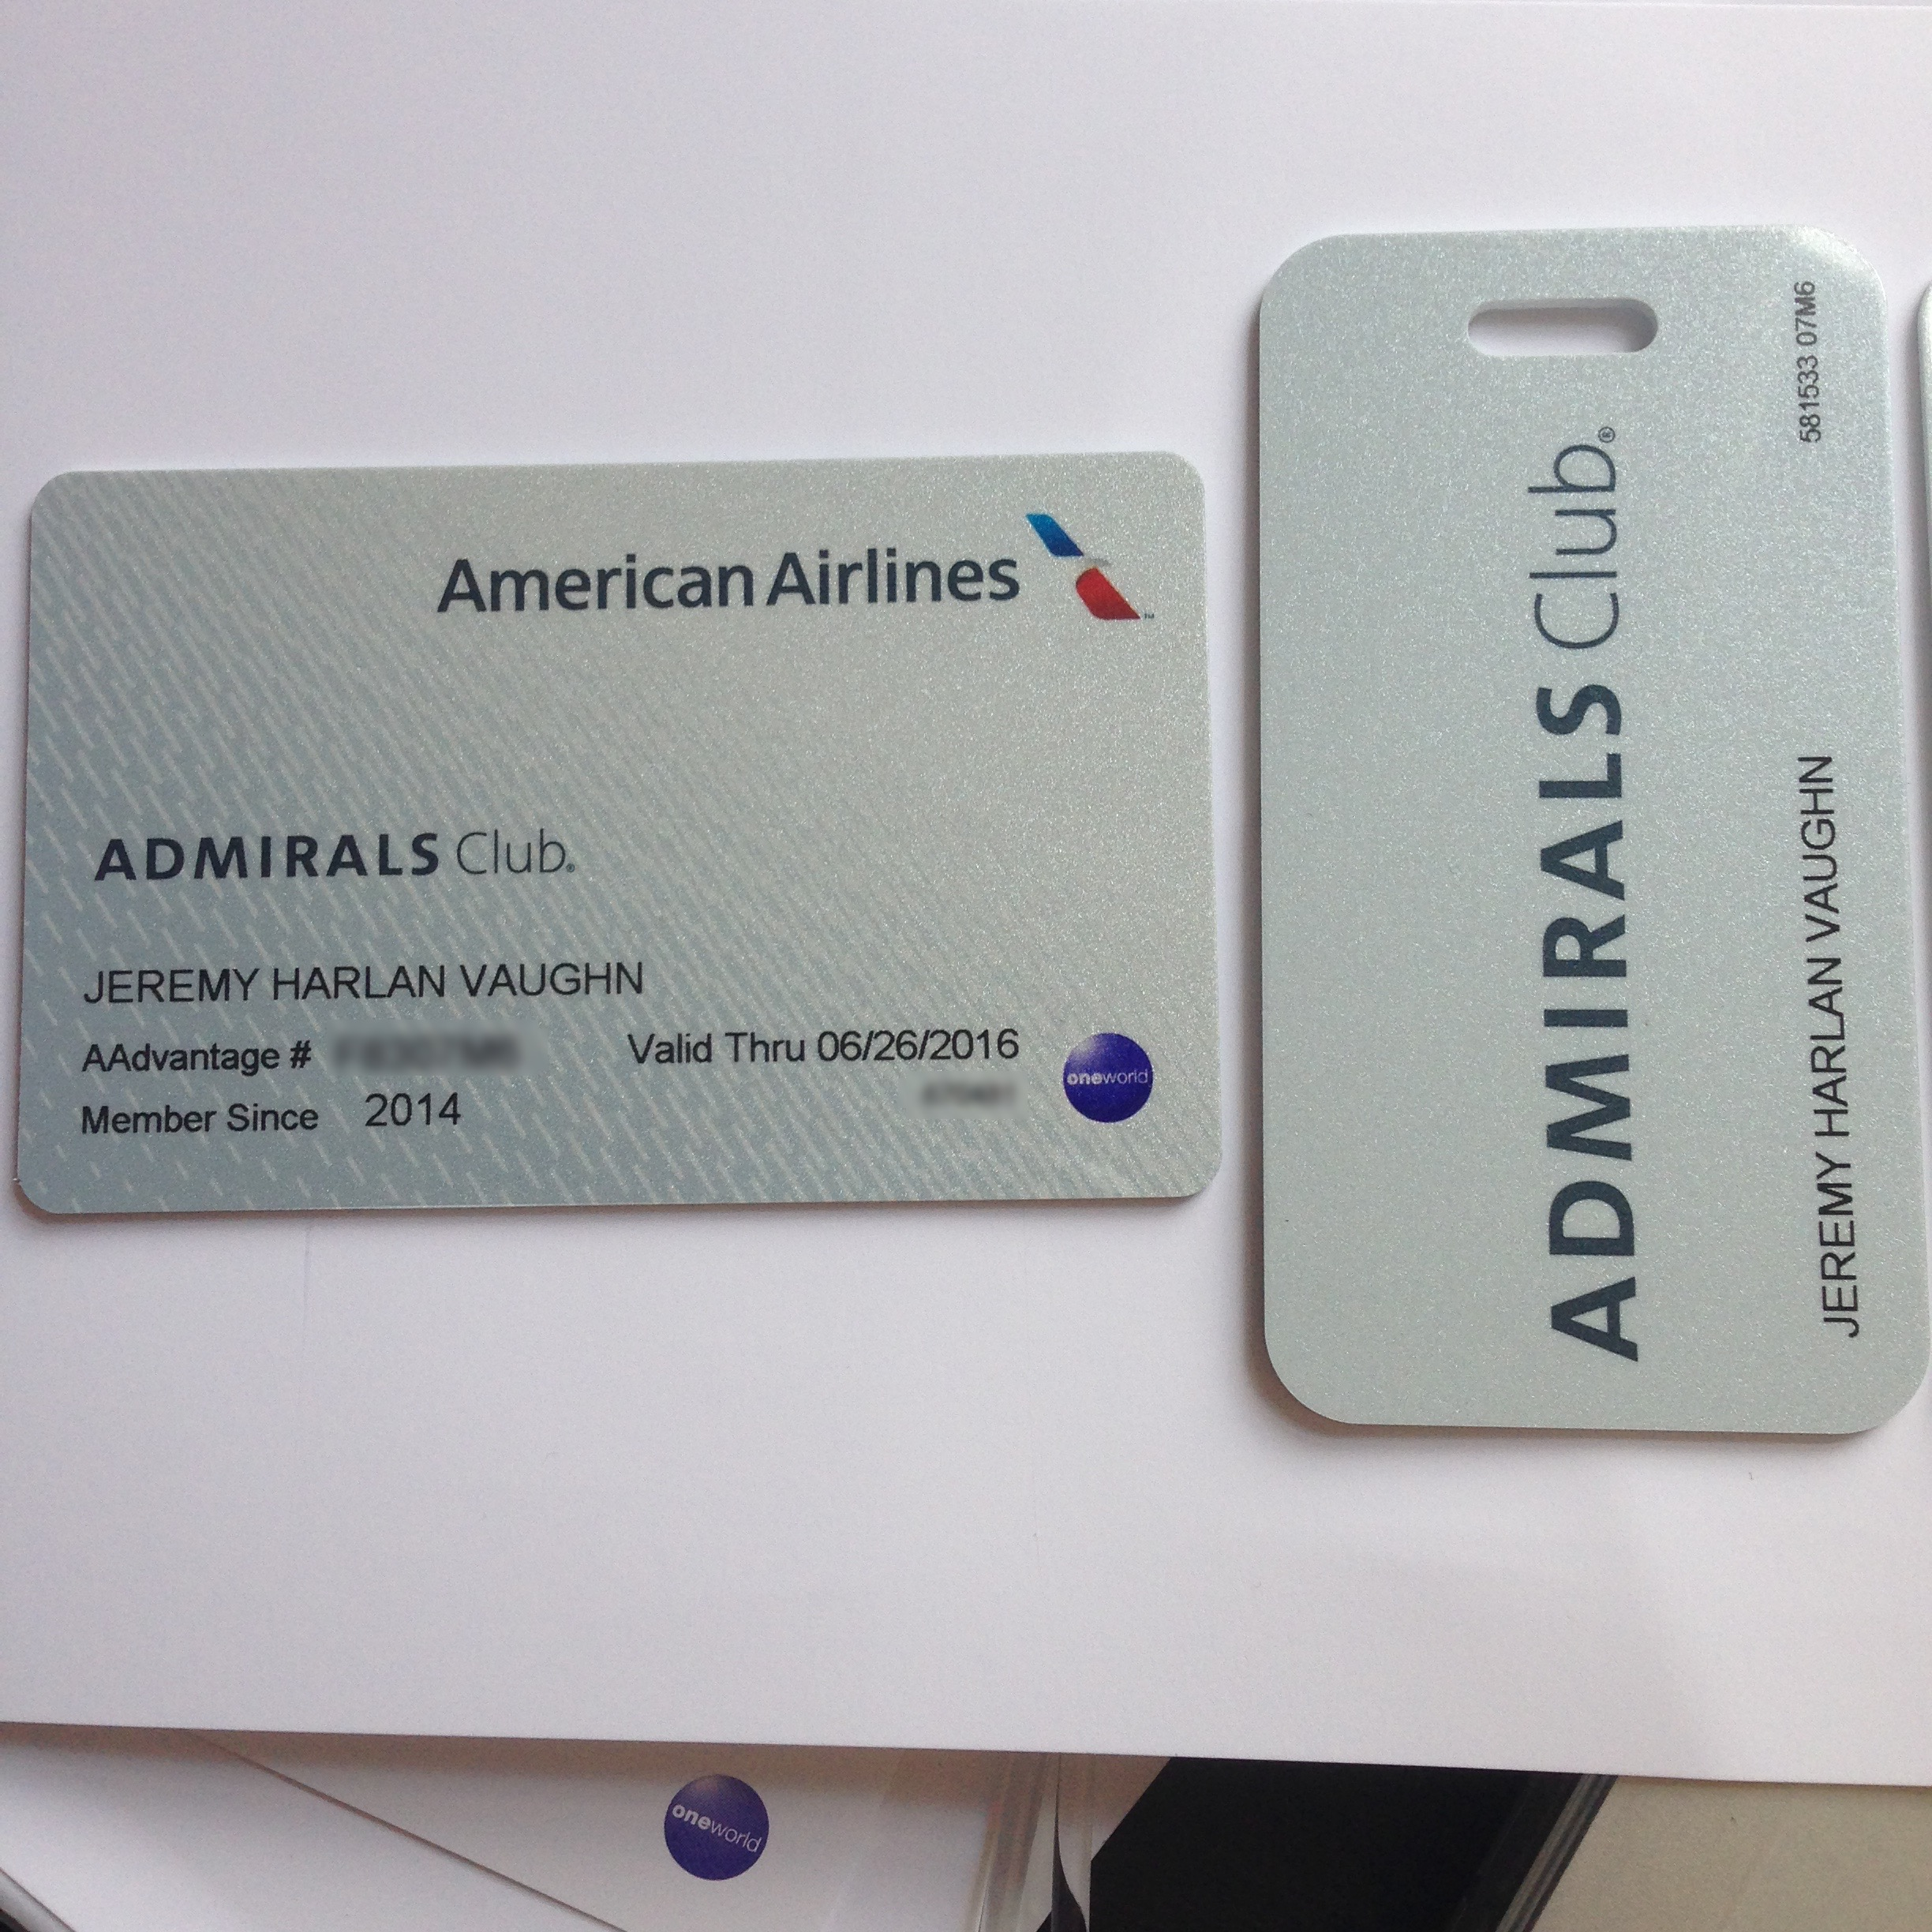 Kohls bday gift free admirals club membership in instant fia membership card and luggage tag magicingreecefo Choice Image